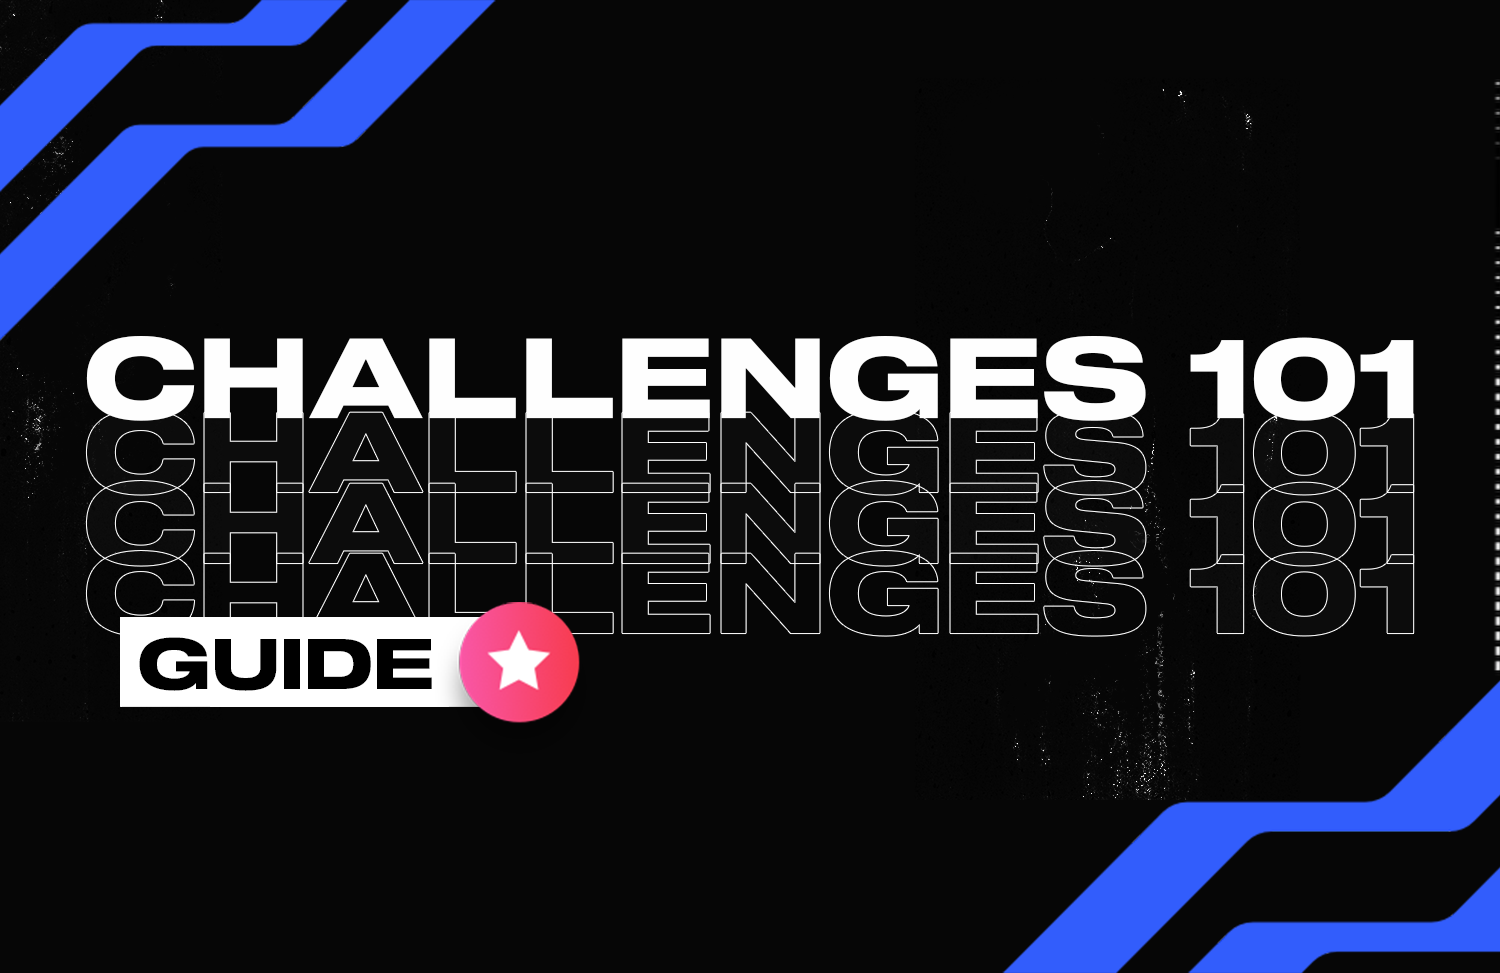 A comprehensive break down on how to successfully complete challenges on NBA Top Shot.